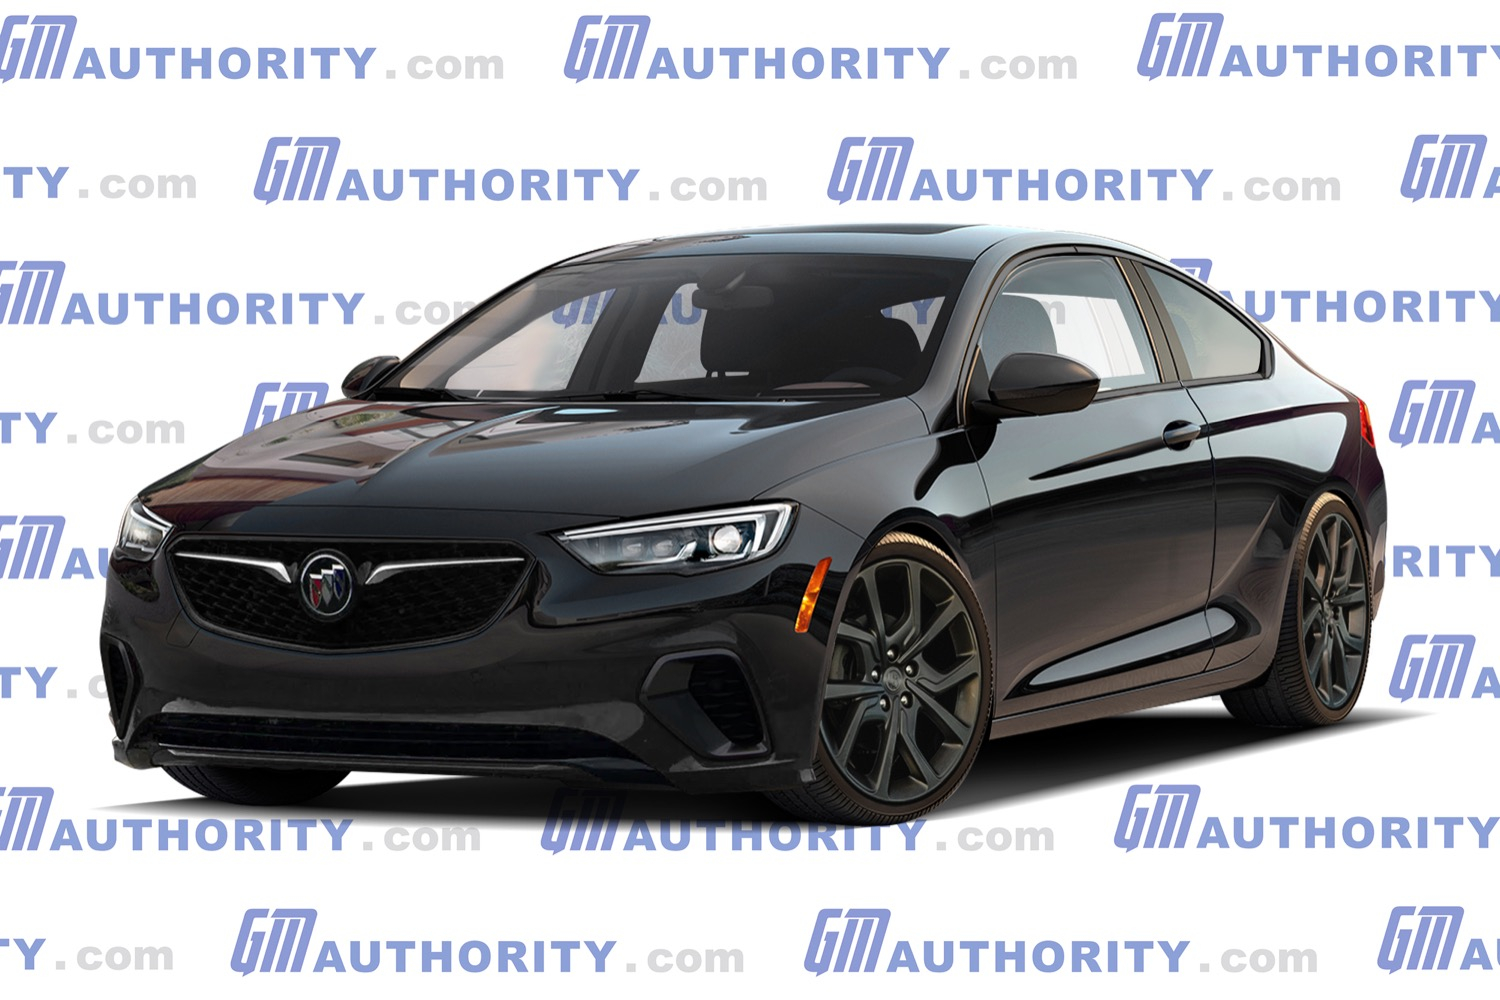 Modern Buick Regal Gnx Rendered | Gm Authority New 2022 Buick Regal Gs Performance, Reviews, Awd